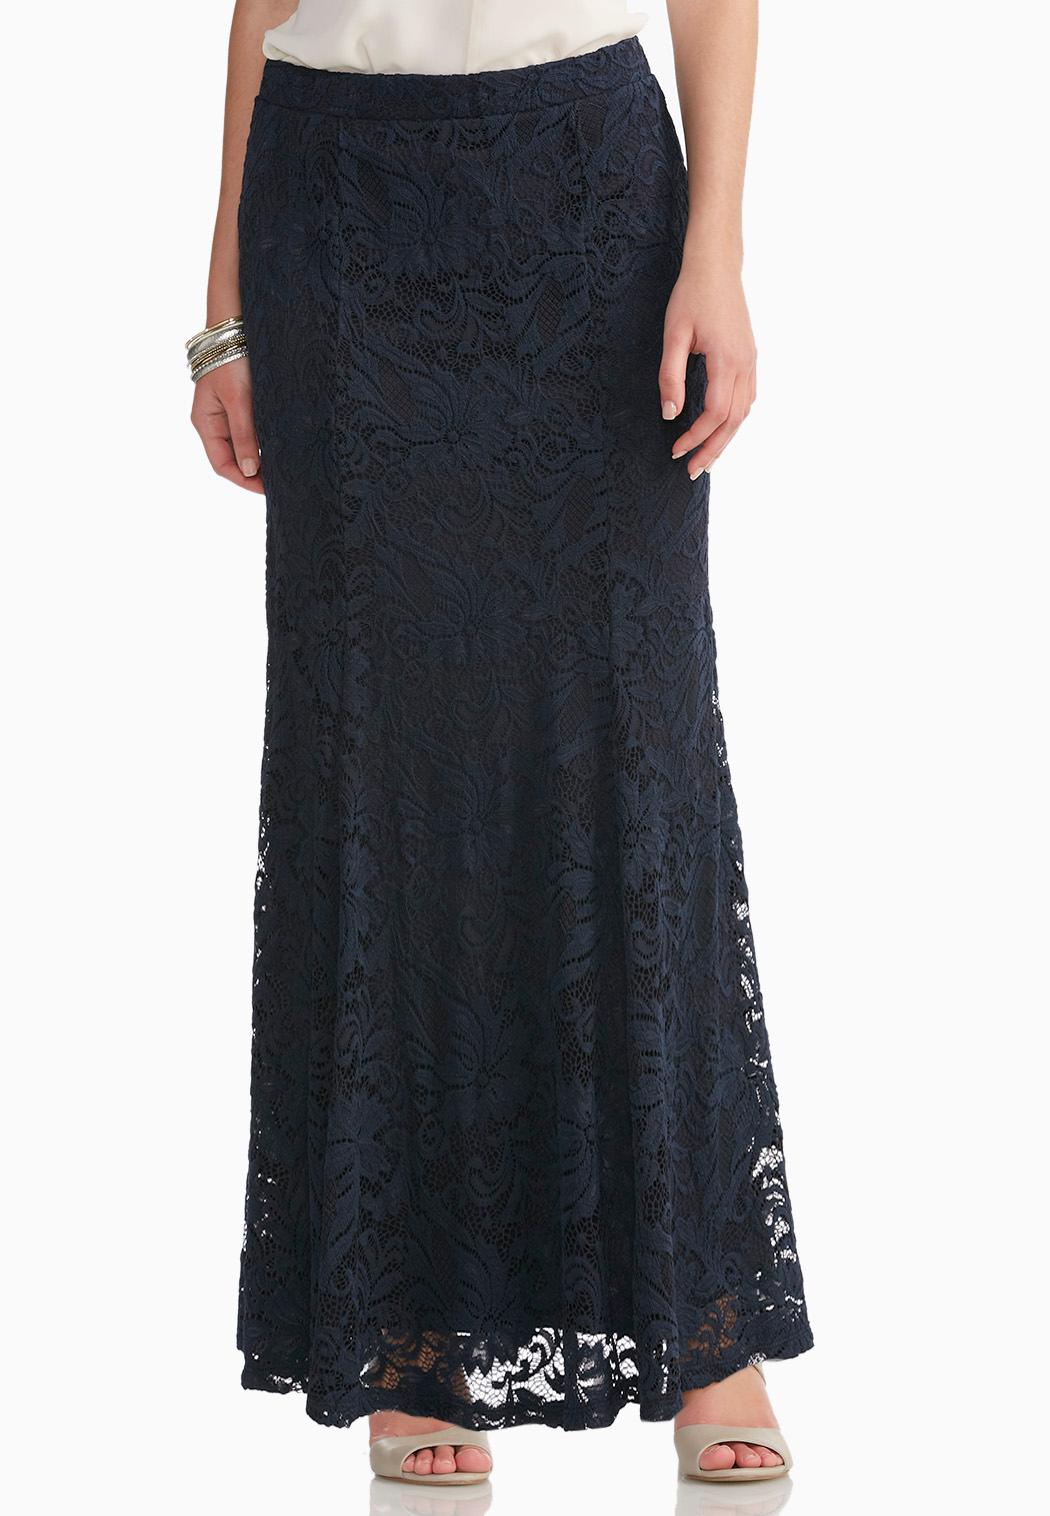 You searched for: lace maxi skirt! Etsy is the home to thousands of handmade, vintage, and one-of-a-kind products and gifts related to your search. No matter what you're looking for or where you are in the world, our global marketplace of sellers can help you find unique and affordable options. Let's get started!